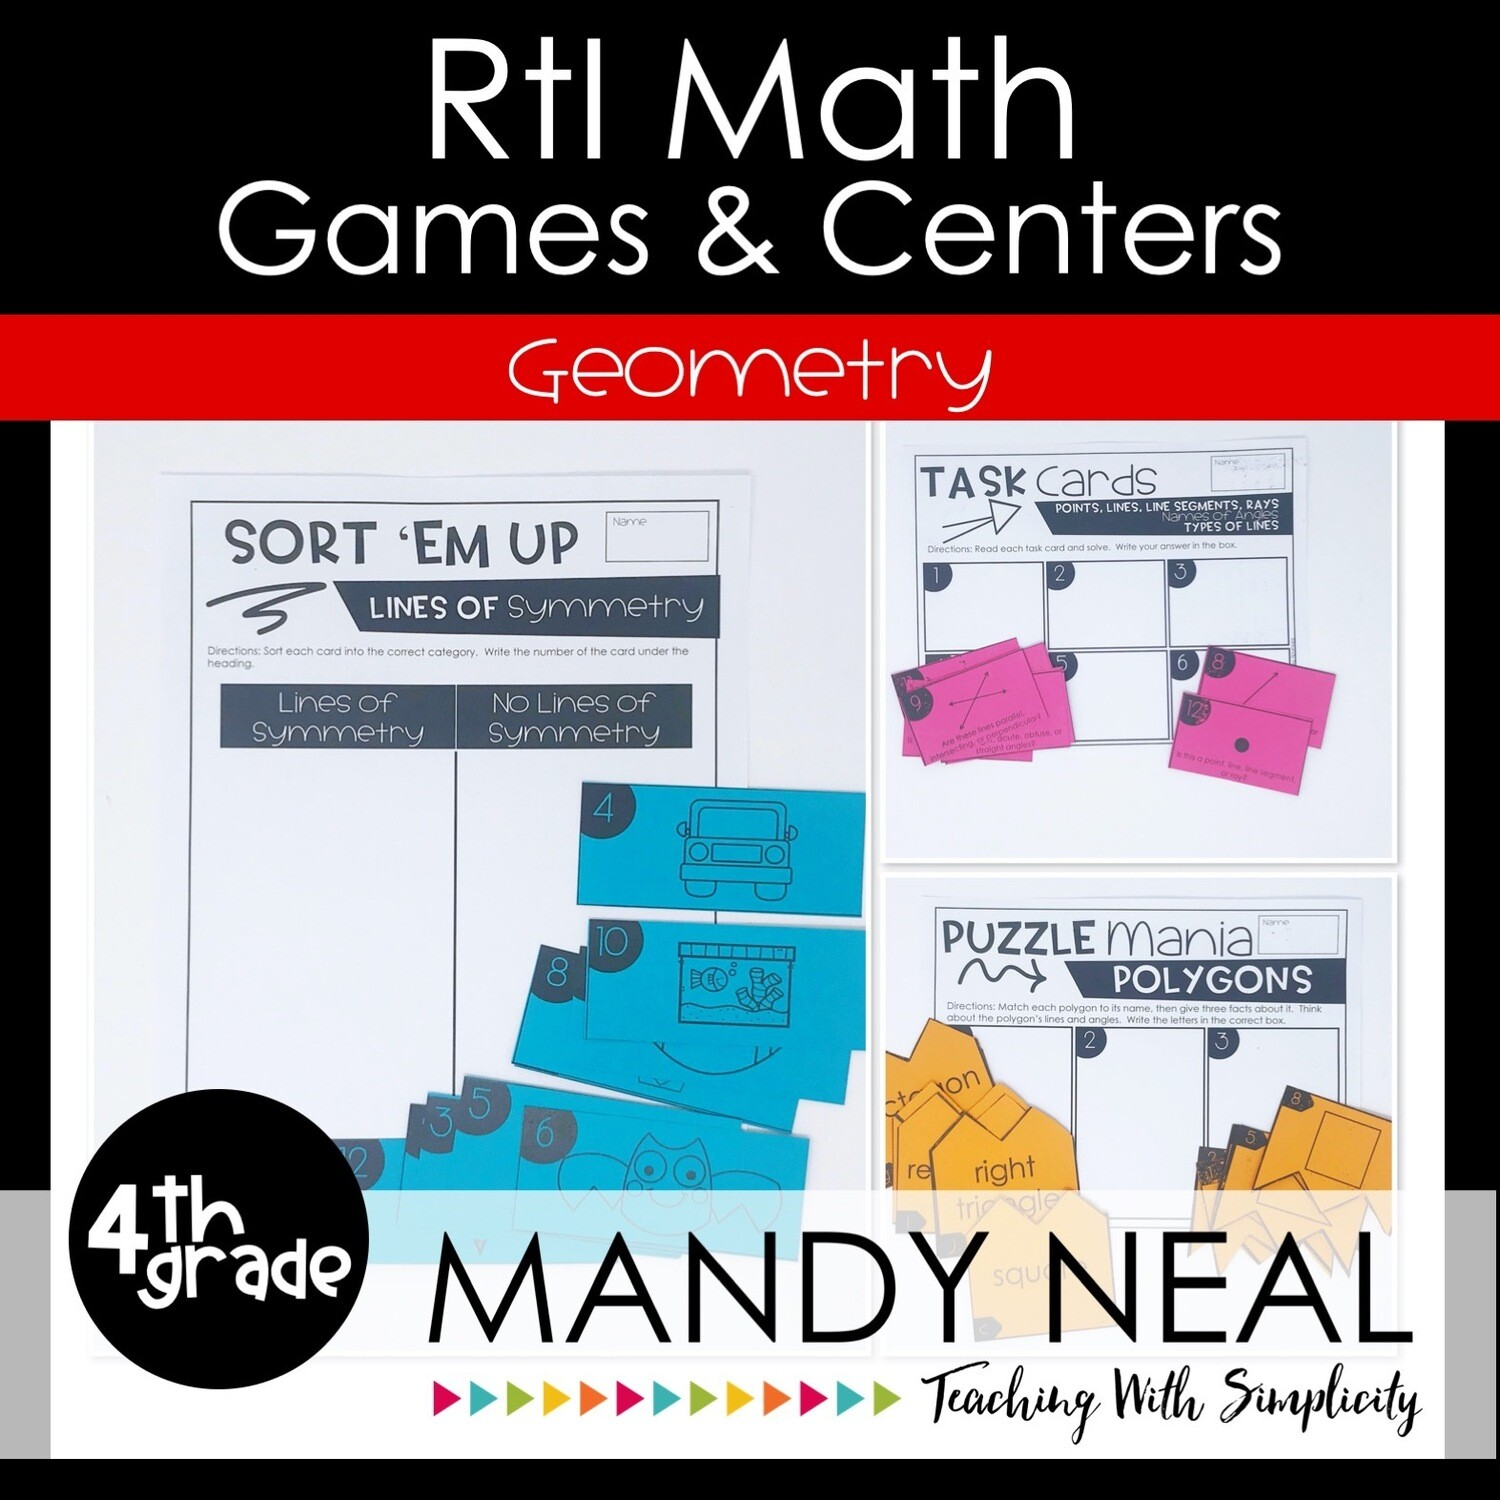 4th Grade Math Intervention Games and Centers for Geometry